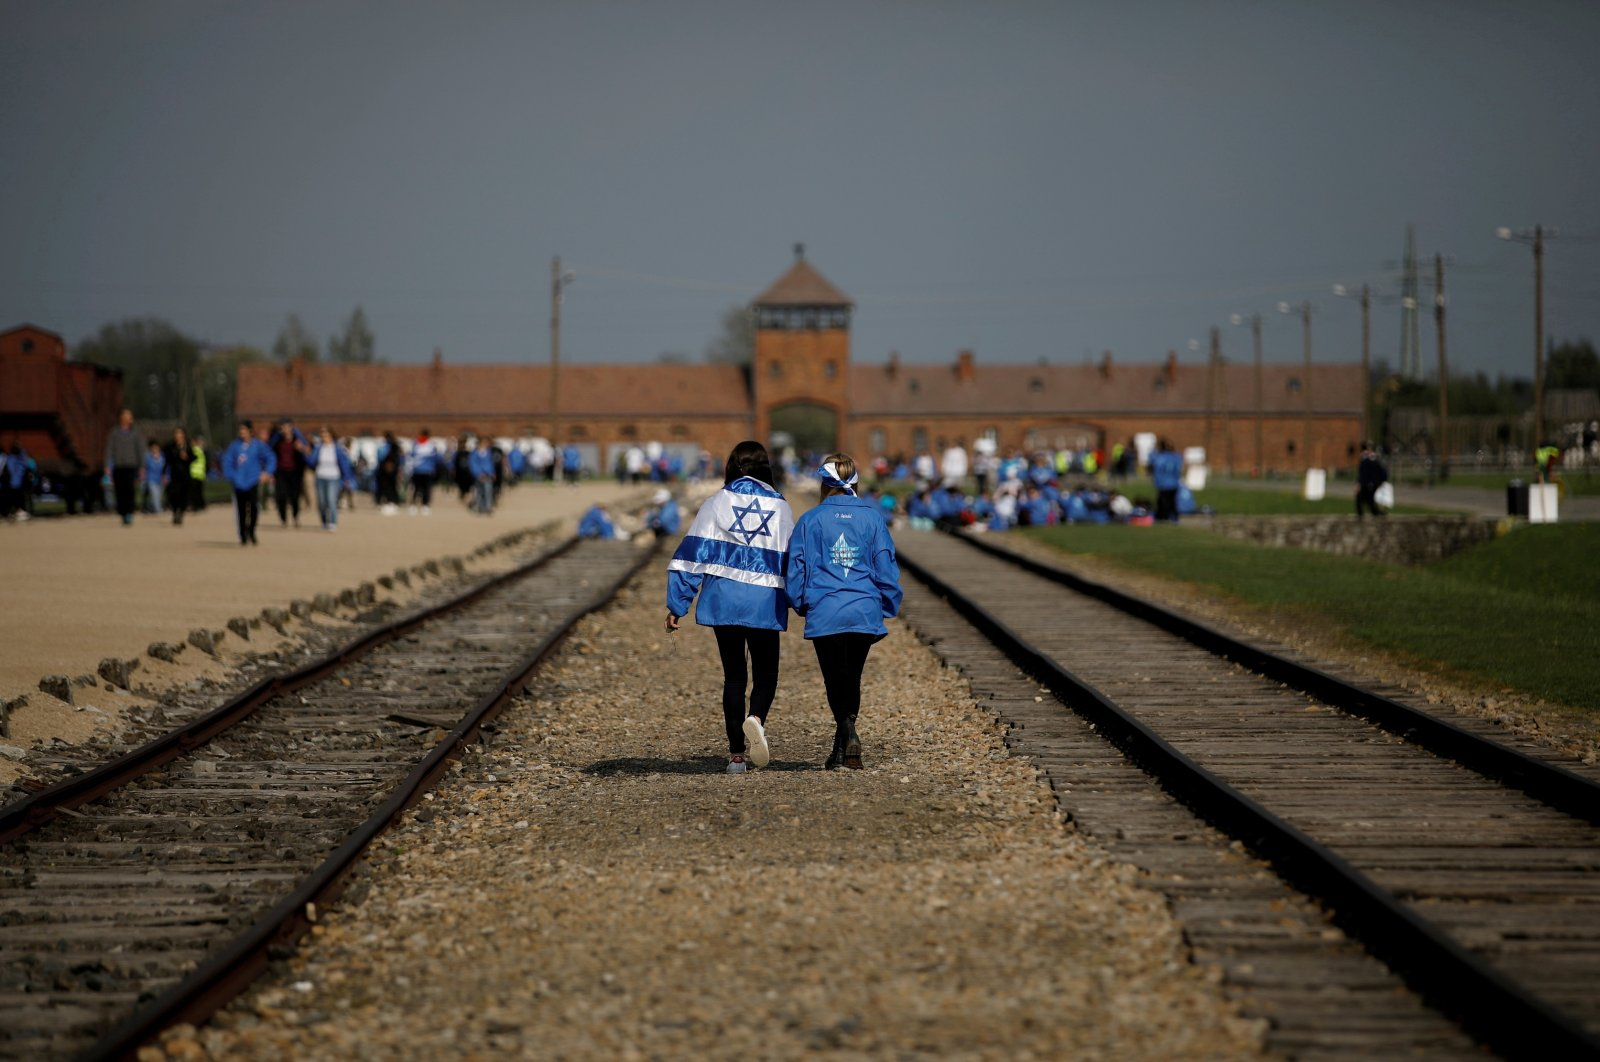 """Participants attend the annual """"March of the Living"""" to commemorate the Holocaust at the former Nazi concentration camp Auschwitz, in Brzezinka near Oswiecim, Poland, May 2, 2019. (Reuters Photo)"""